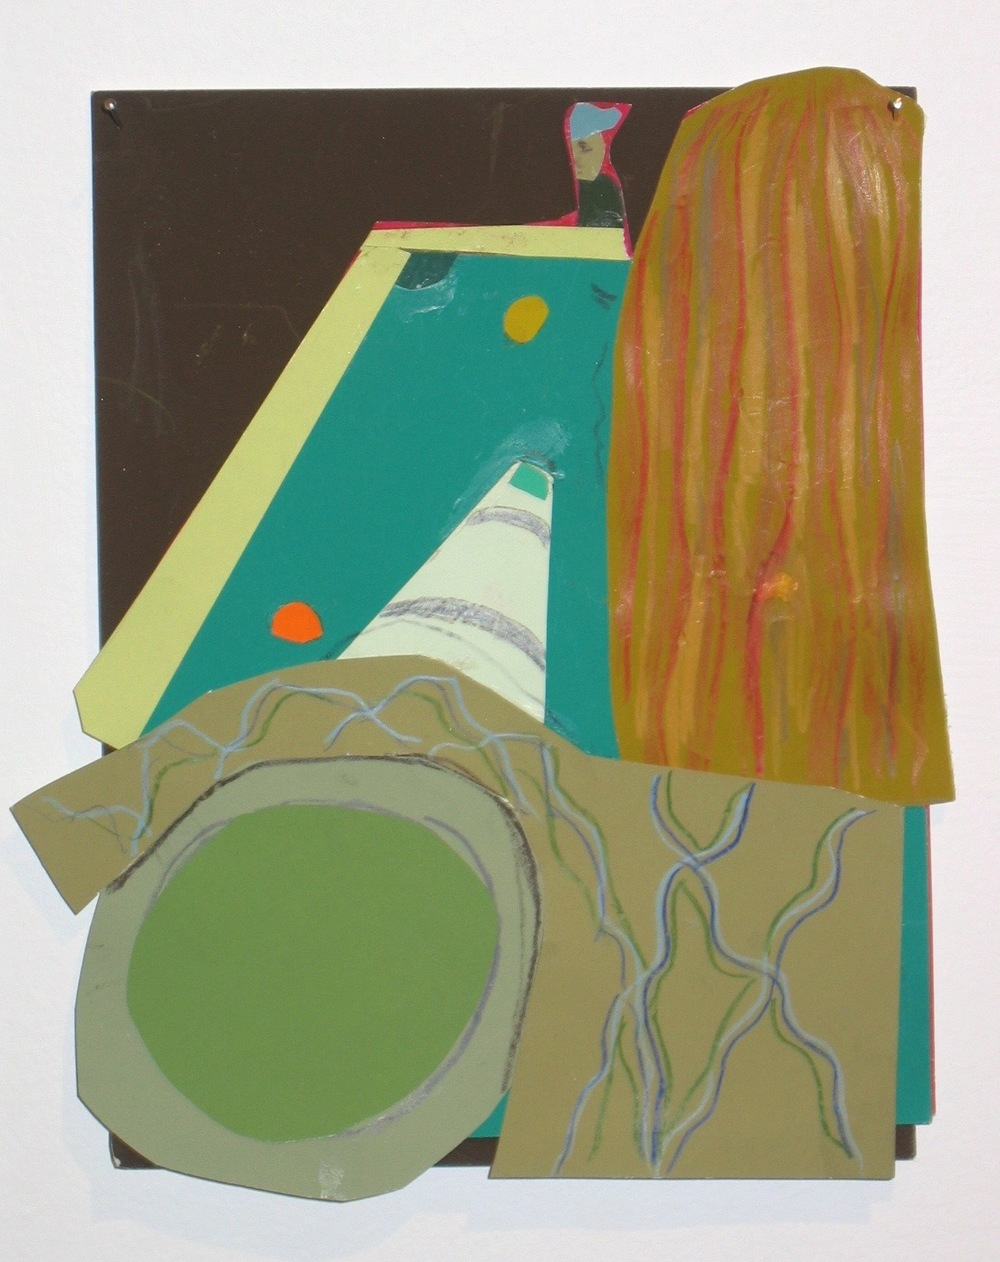 Jennifer Rochlin  Pool Game  2005 Color-aid paper and prismacolor collage 4 ½h x 6w in